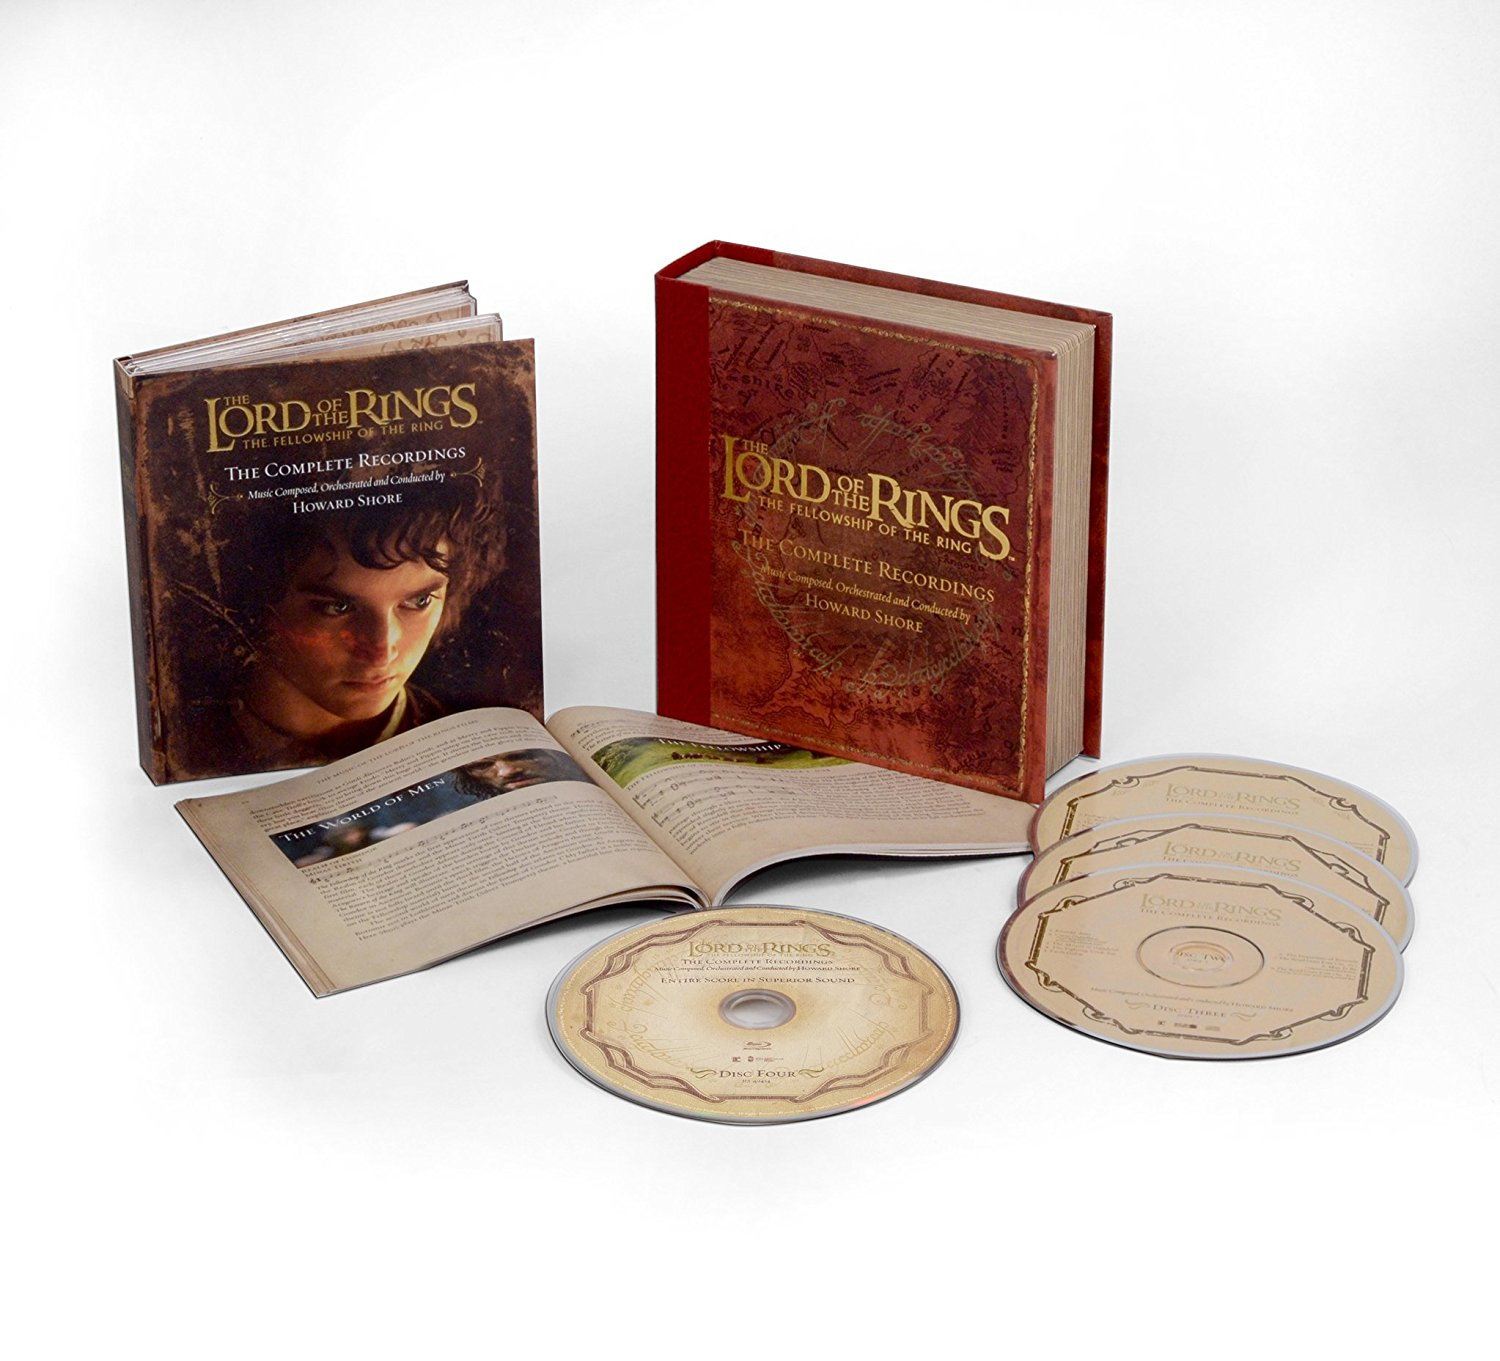 The Lord of the Rings: The Fellowship of the Rings CD Box Set